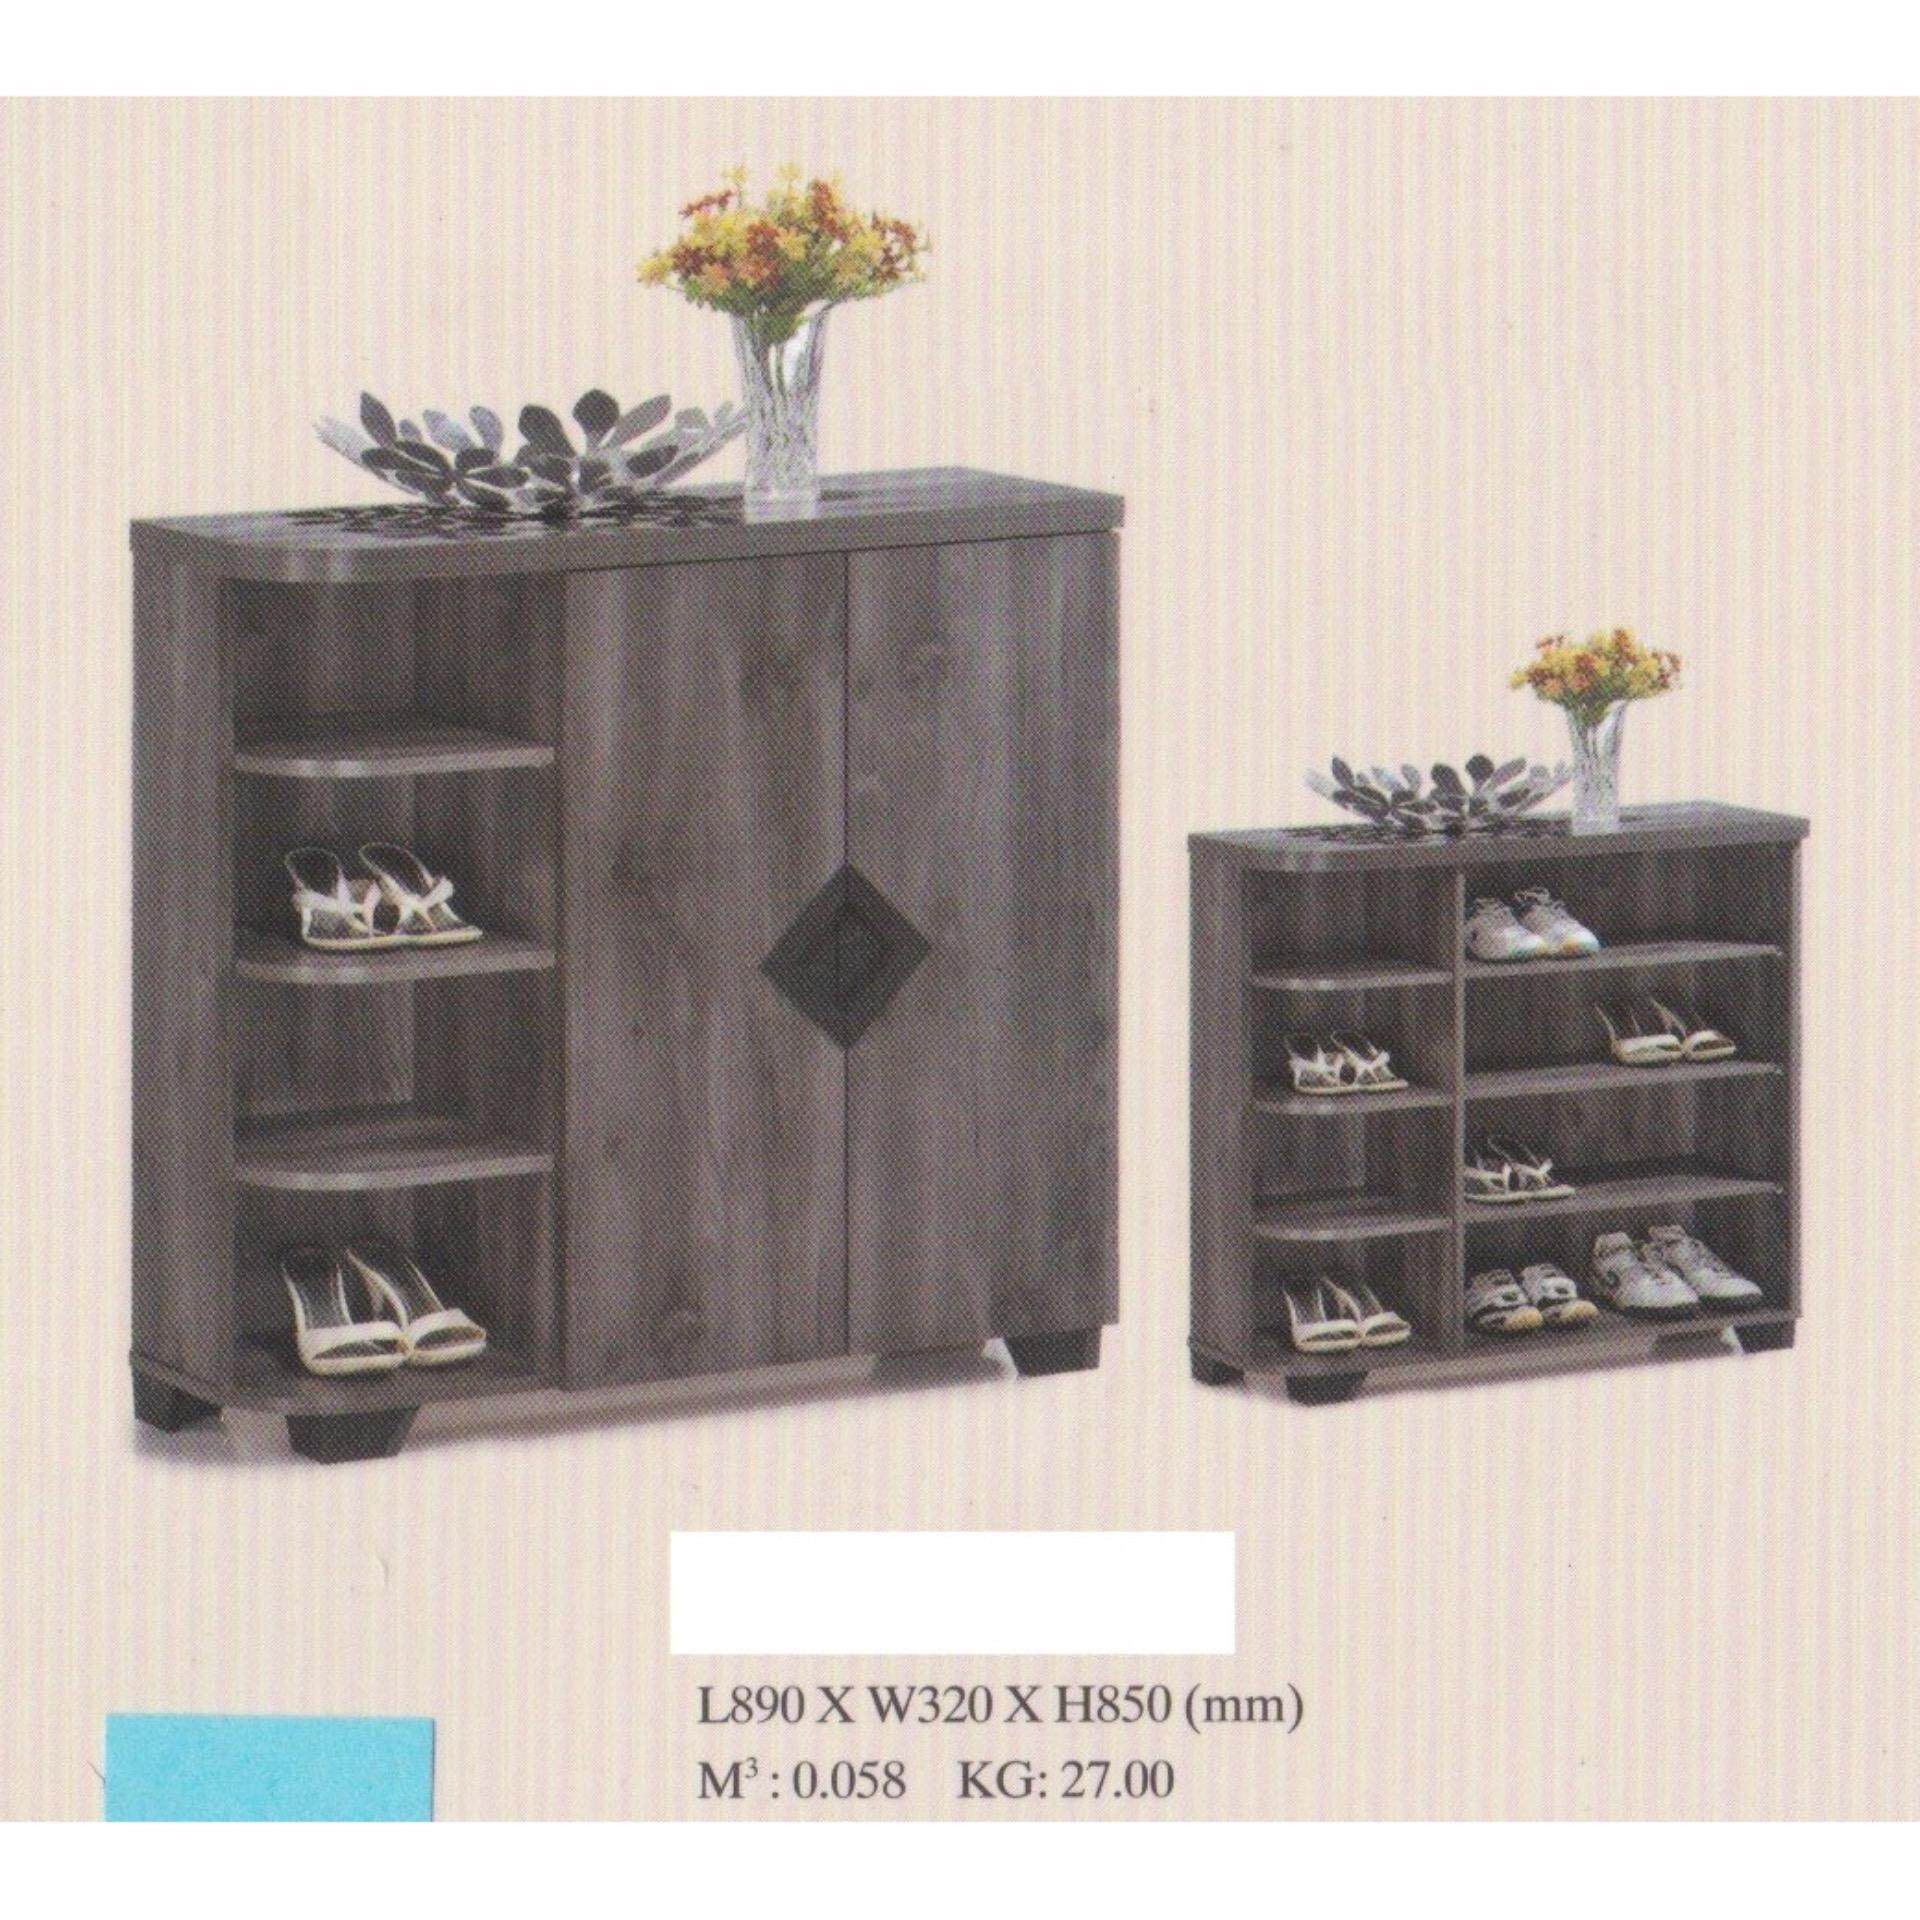 Ready-Fixed Solid 2 Door 4 Layer Solid Shoes Cabinet Wood With 4 Layer Storage Compartment (Grey Color) L890MM X W320MM X H850MM